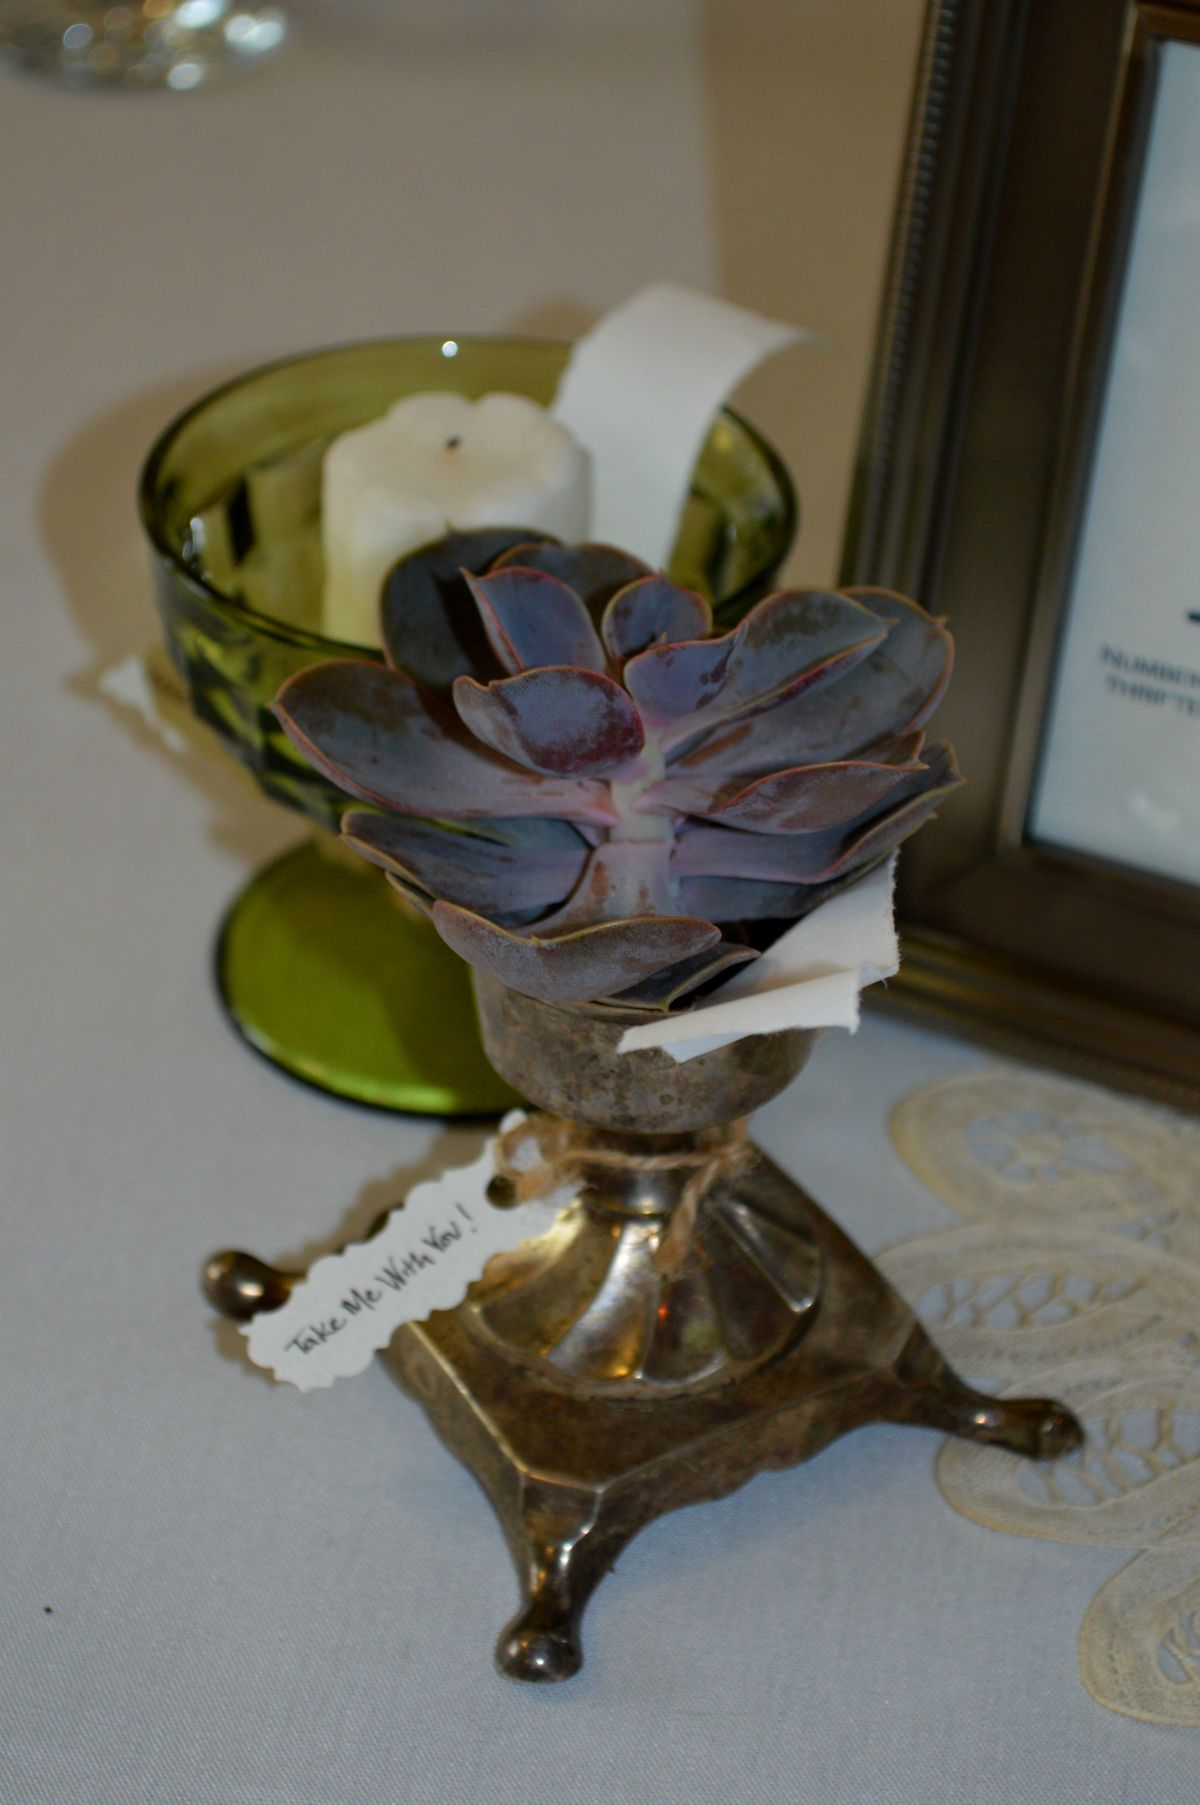 This creative couple who had their reception at the Leavenworth Riverfront Community Center in June 2014 used succulents and other plants  inside thrift-store vases as centerpieces for their guests to take home.